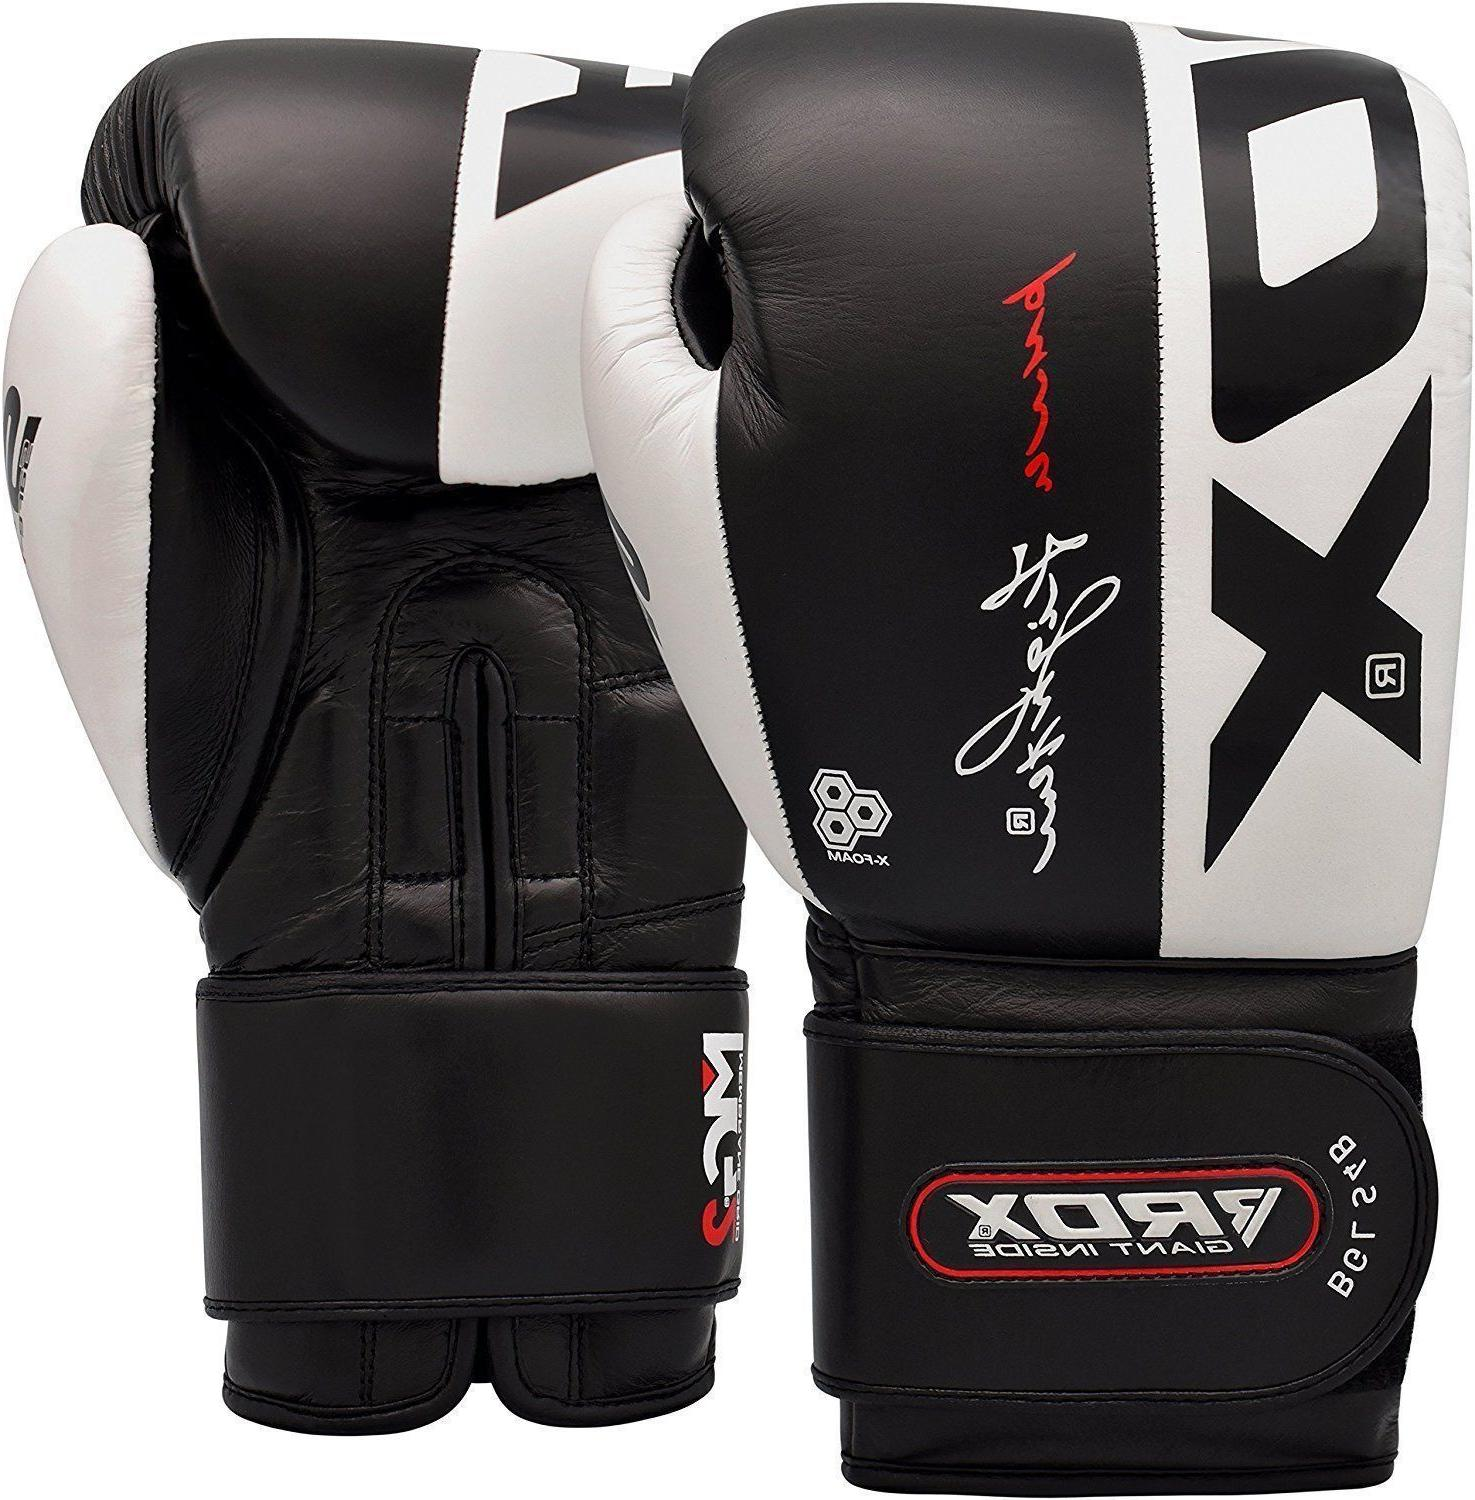 RDX Boxing Gloves Kickboxing Muay Thai Fighting Cowhide Leat